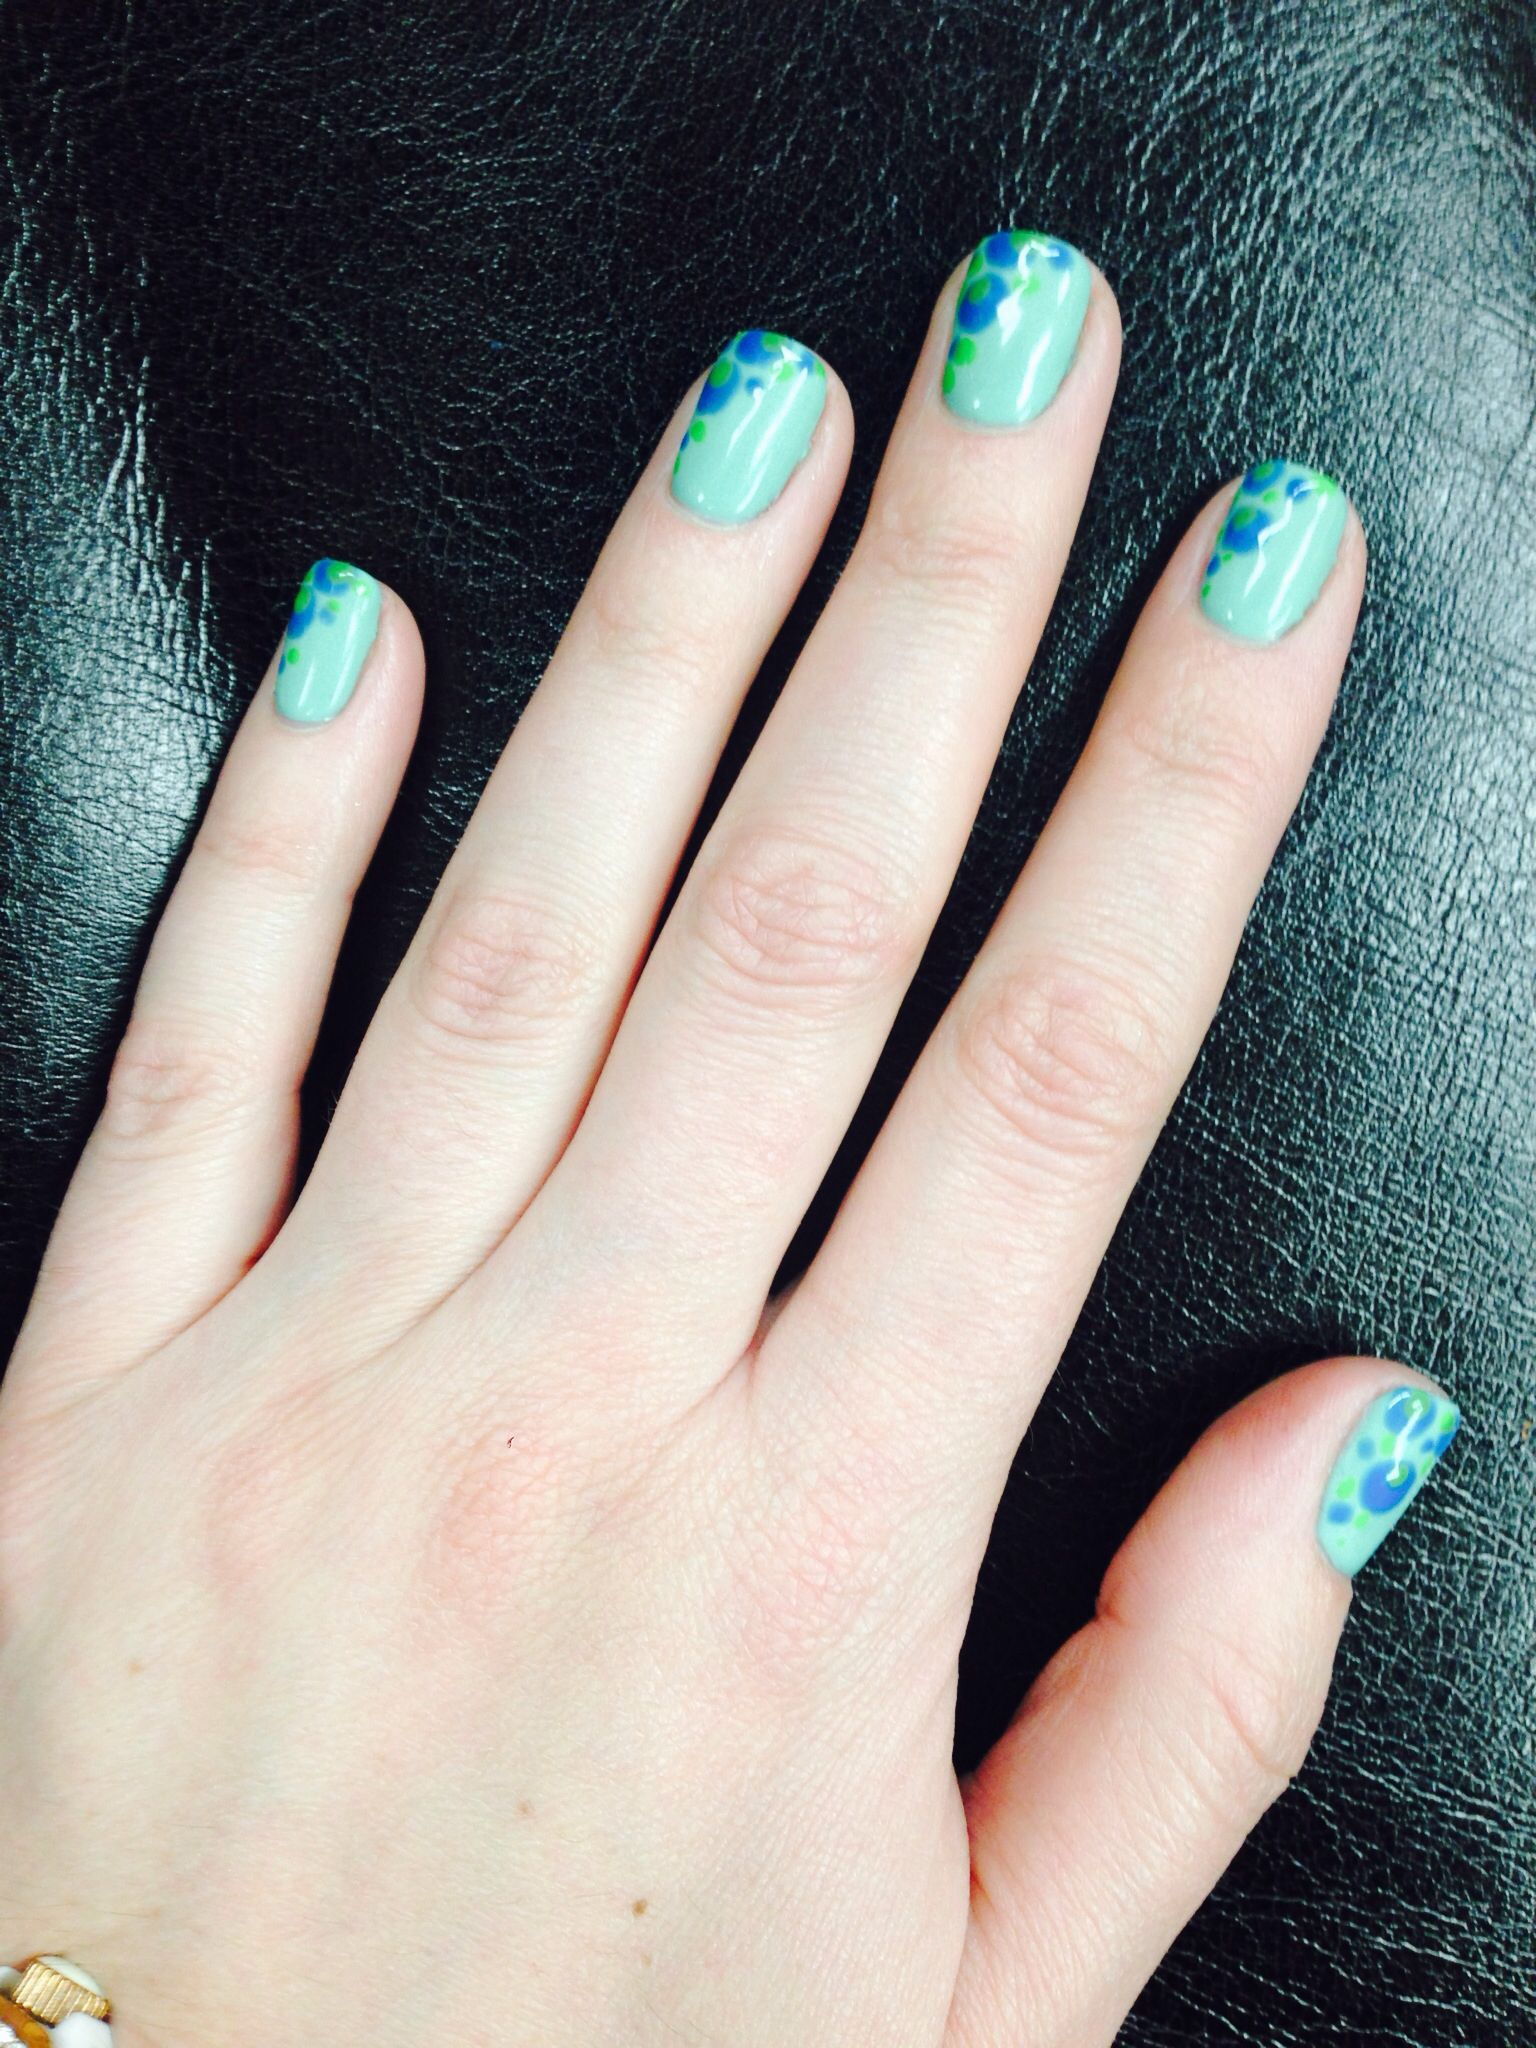 Gel nails designers edge nails pinterest gel nails designers edge prinsesfo Image collections